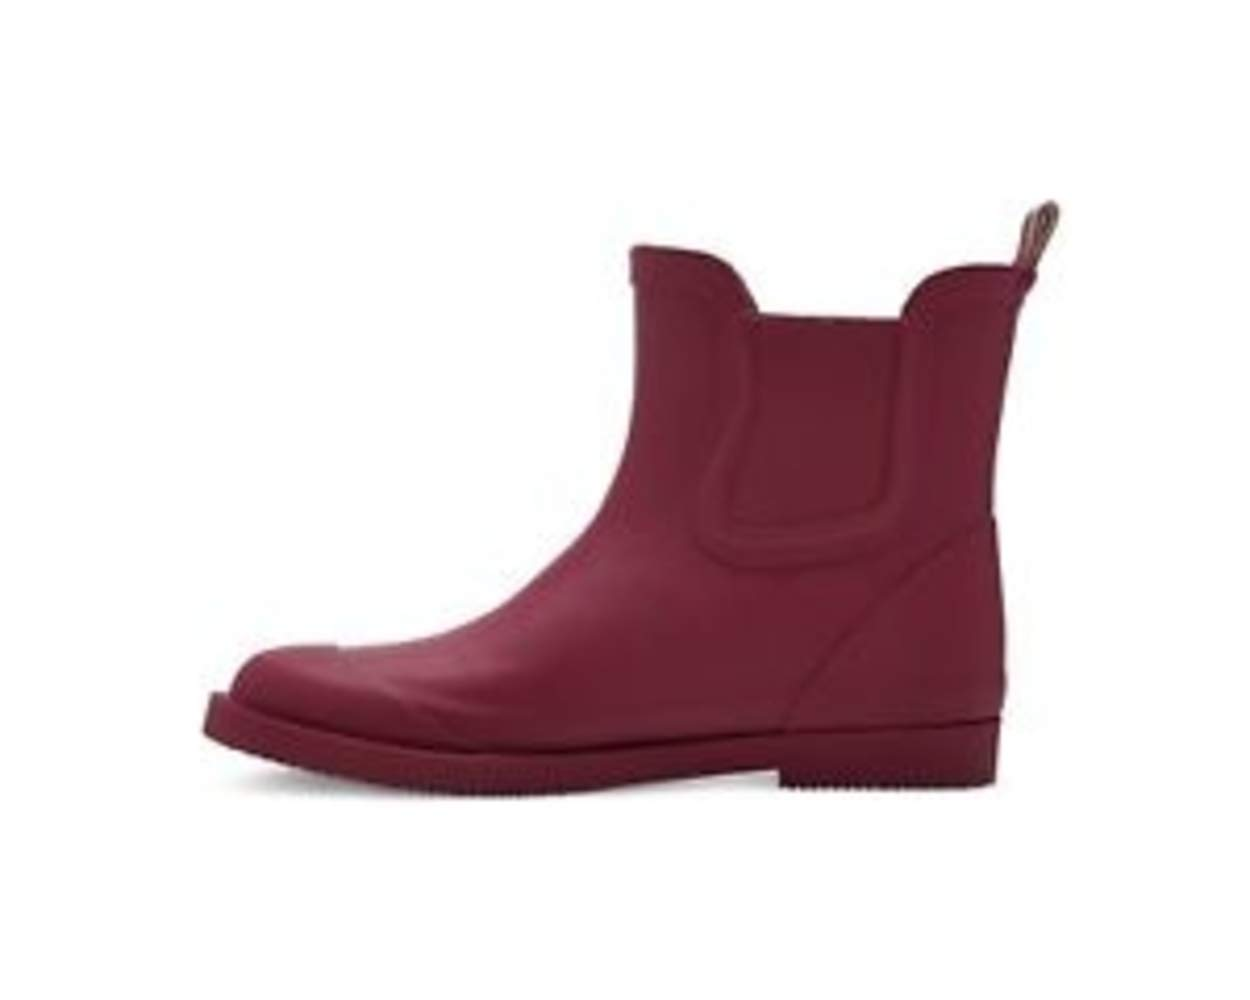 Girls Cat and Jack Rain Boots - Rose - Size 1